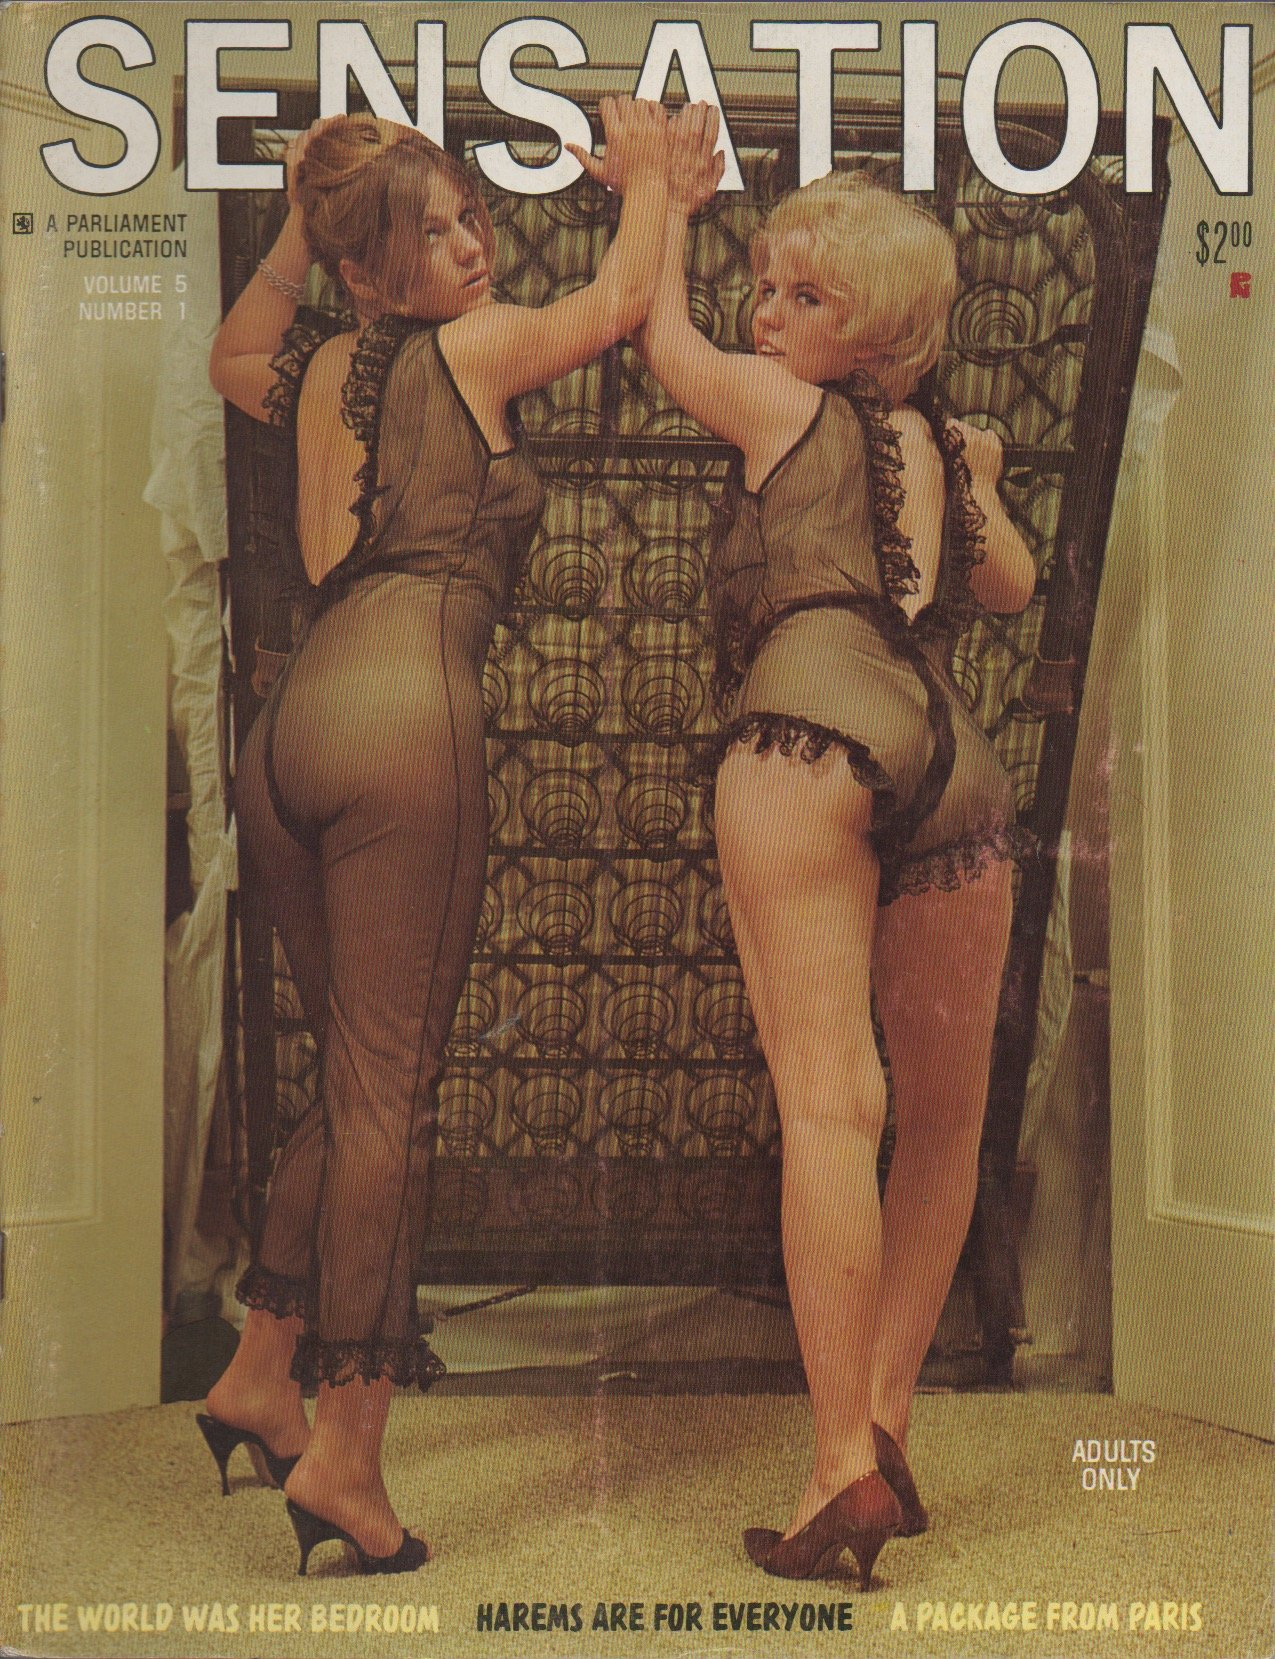 Sensation (adult nude magazine), vol. 5, no. 1 (March-April-May 1968) (La  Belle Otero; Harems for Everyone; Lori Duchamps; Peri Carr; Take It Off,  Babe!)